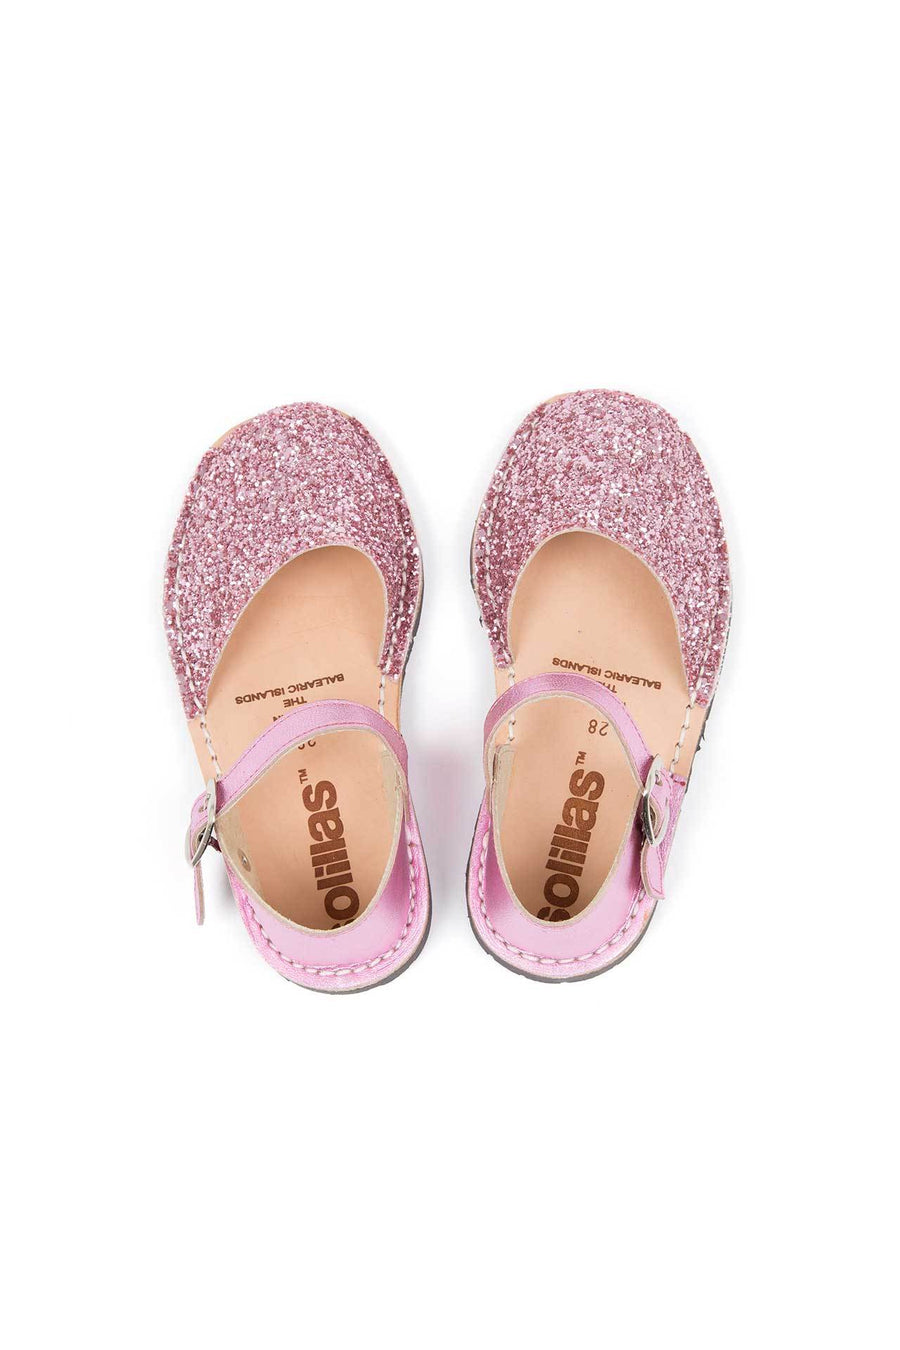 Pink Glitter - Leather Buckle sandals